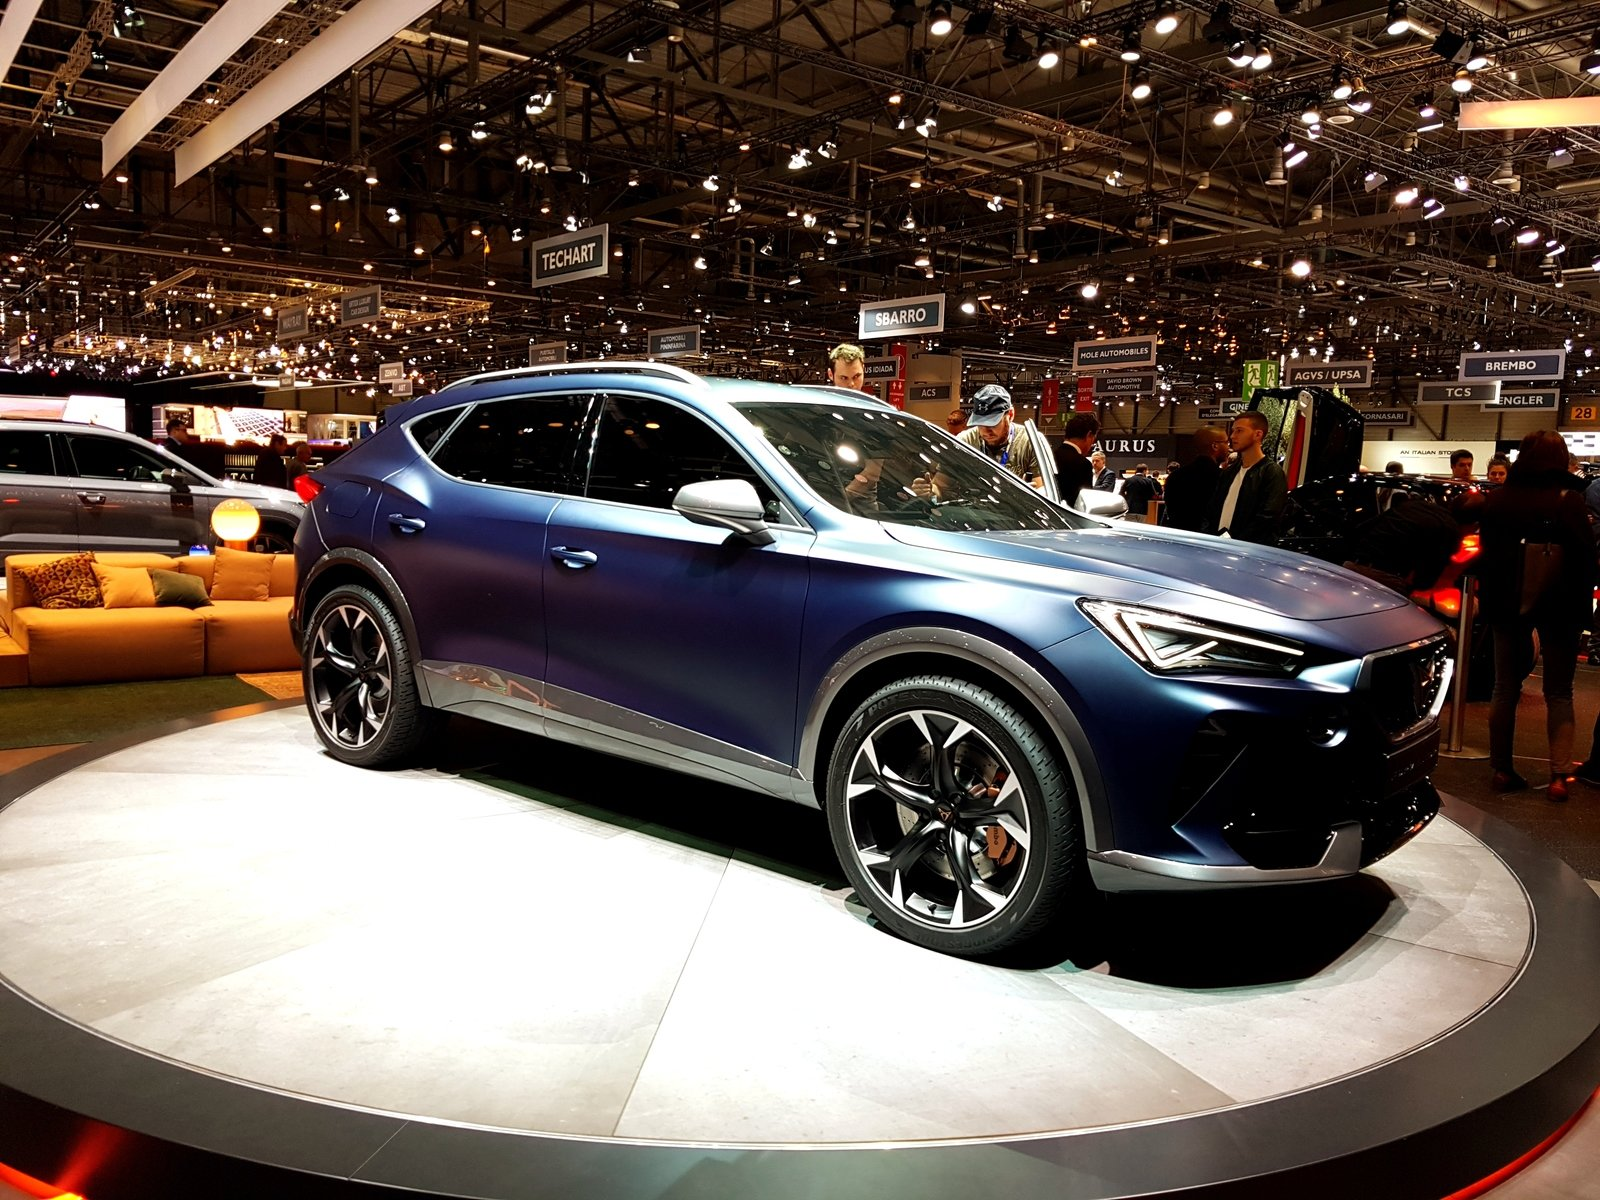 Cupra Formentor Concept Steals The Show At SEAT's Geneva Stand Pictures, Photos, Wallpapers ...